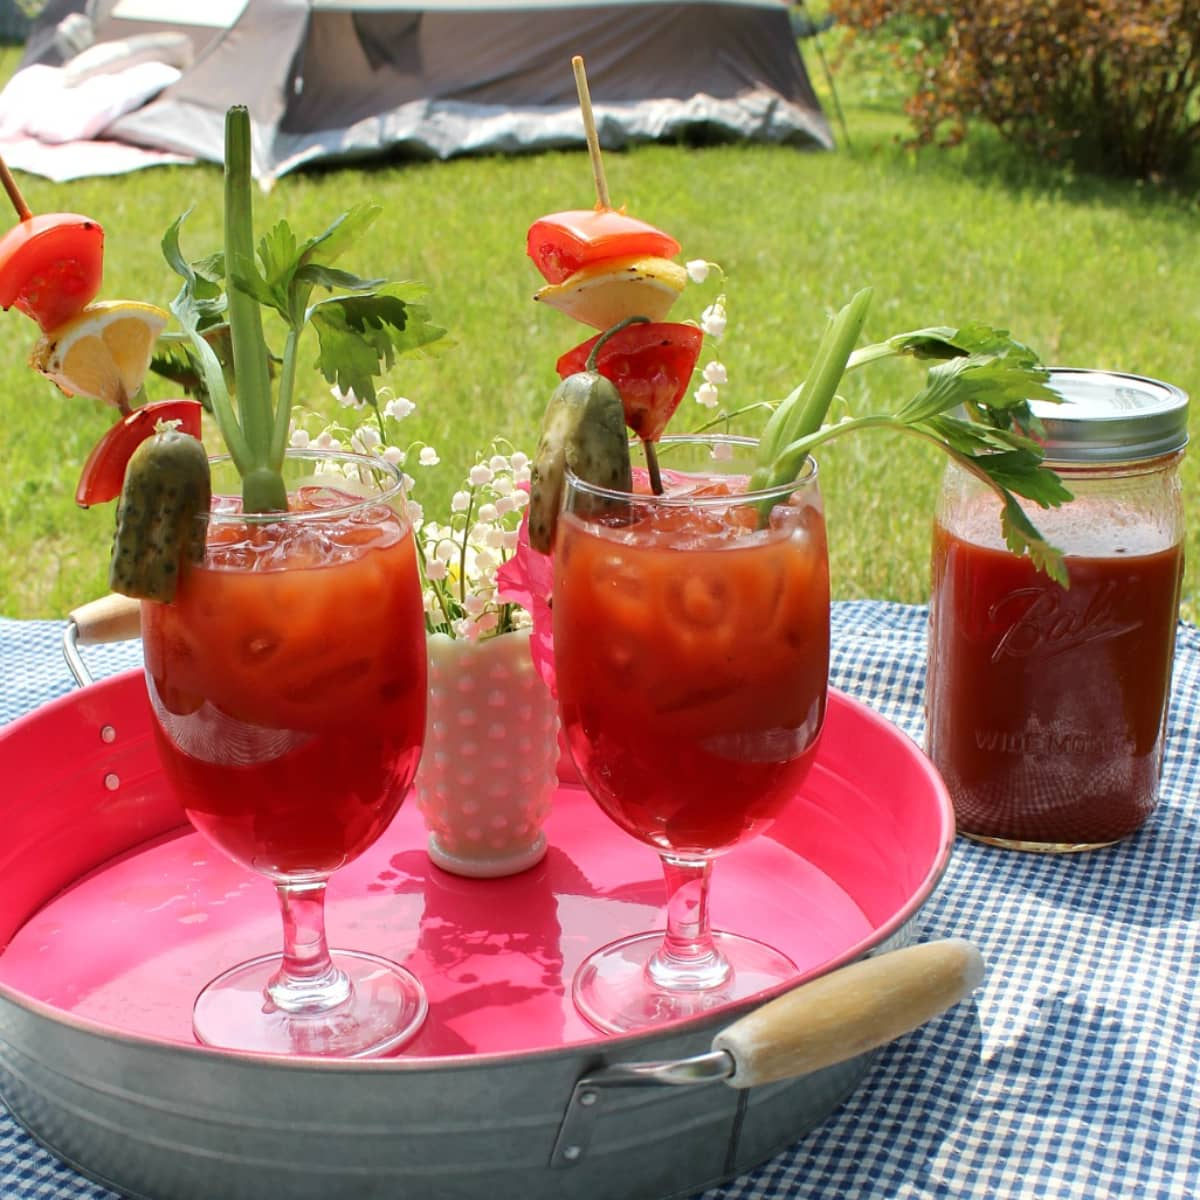 Garnished Bloody mary drinks on a metal tray